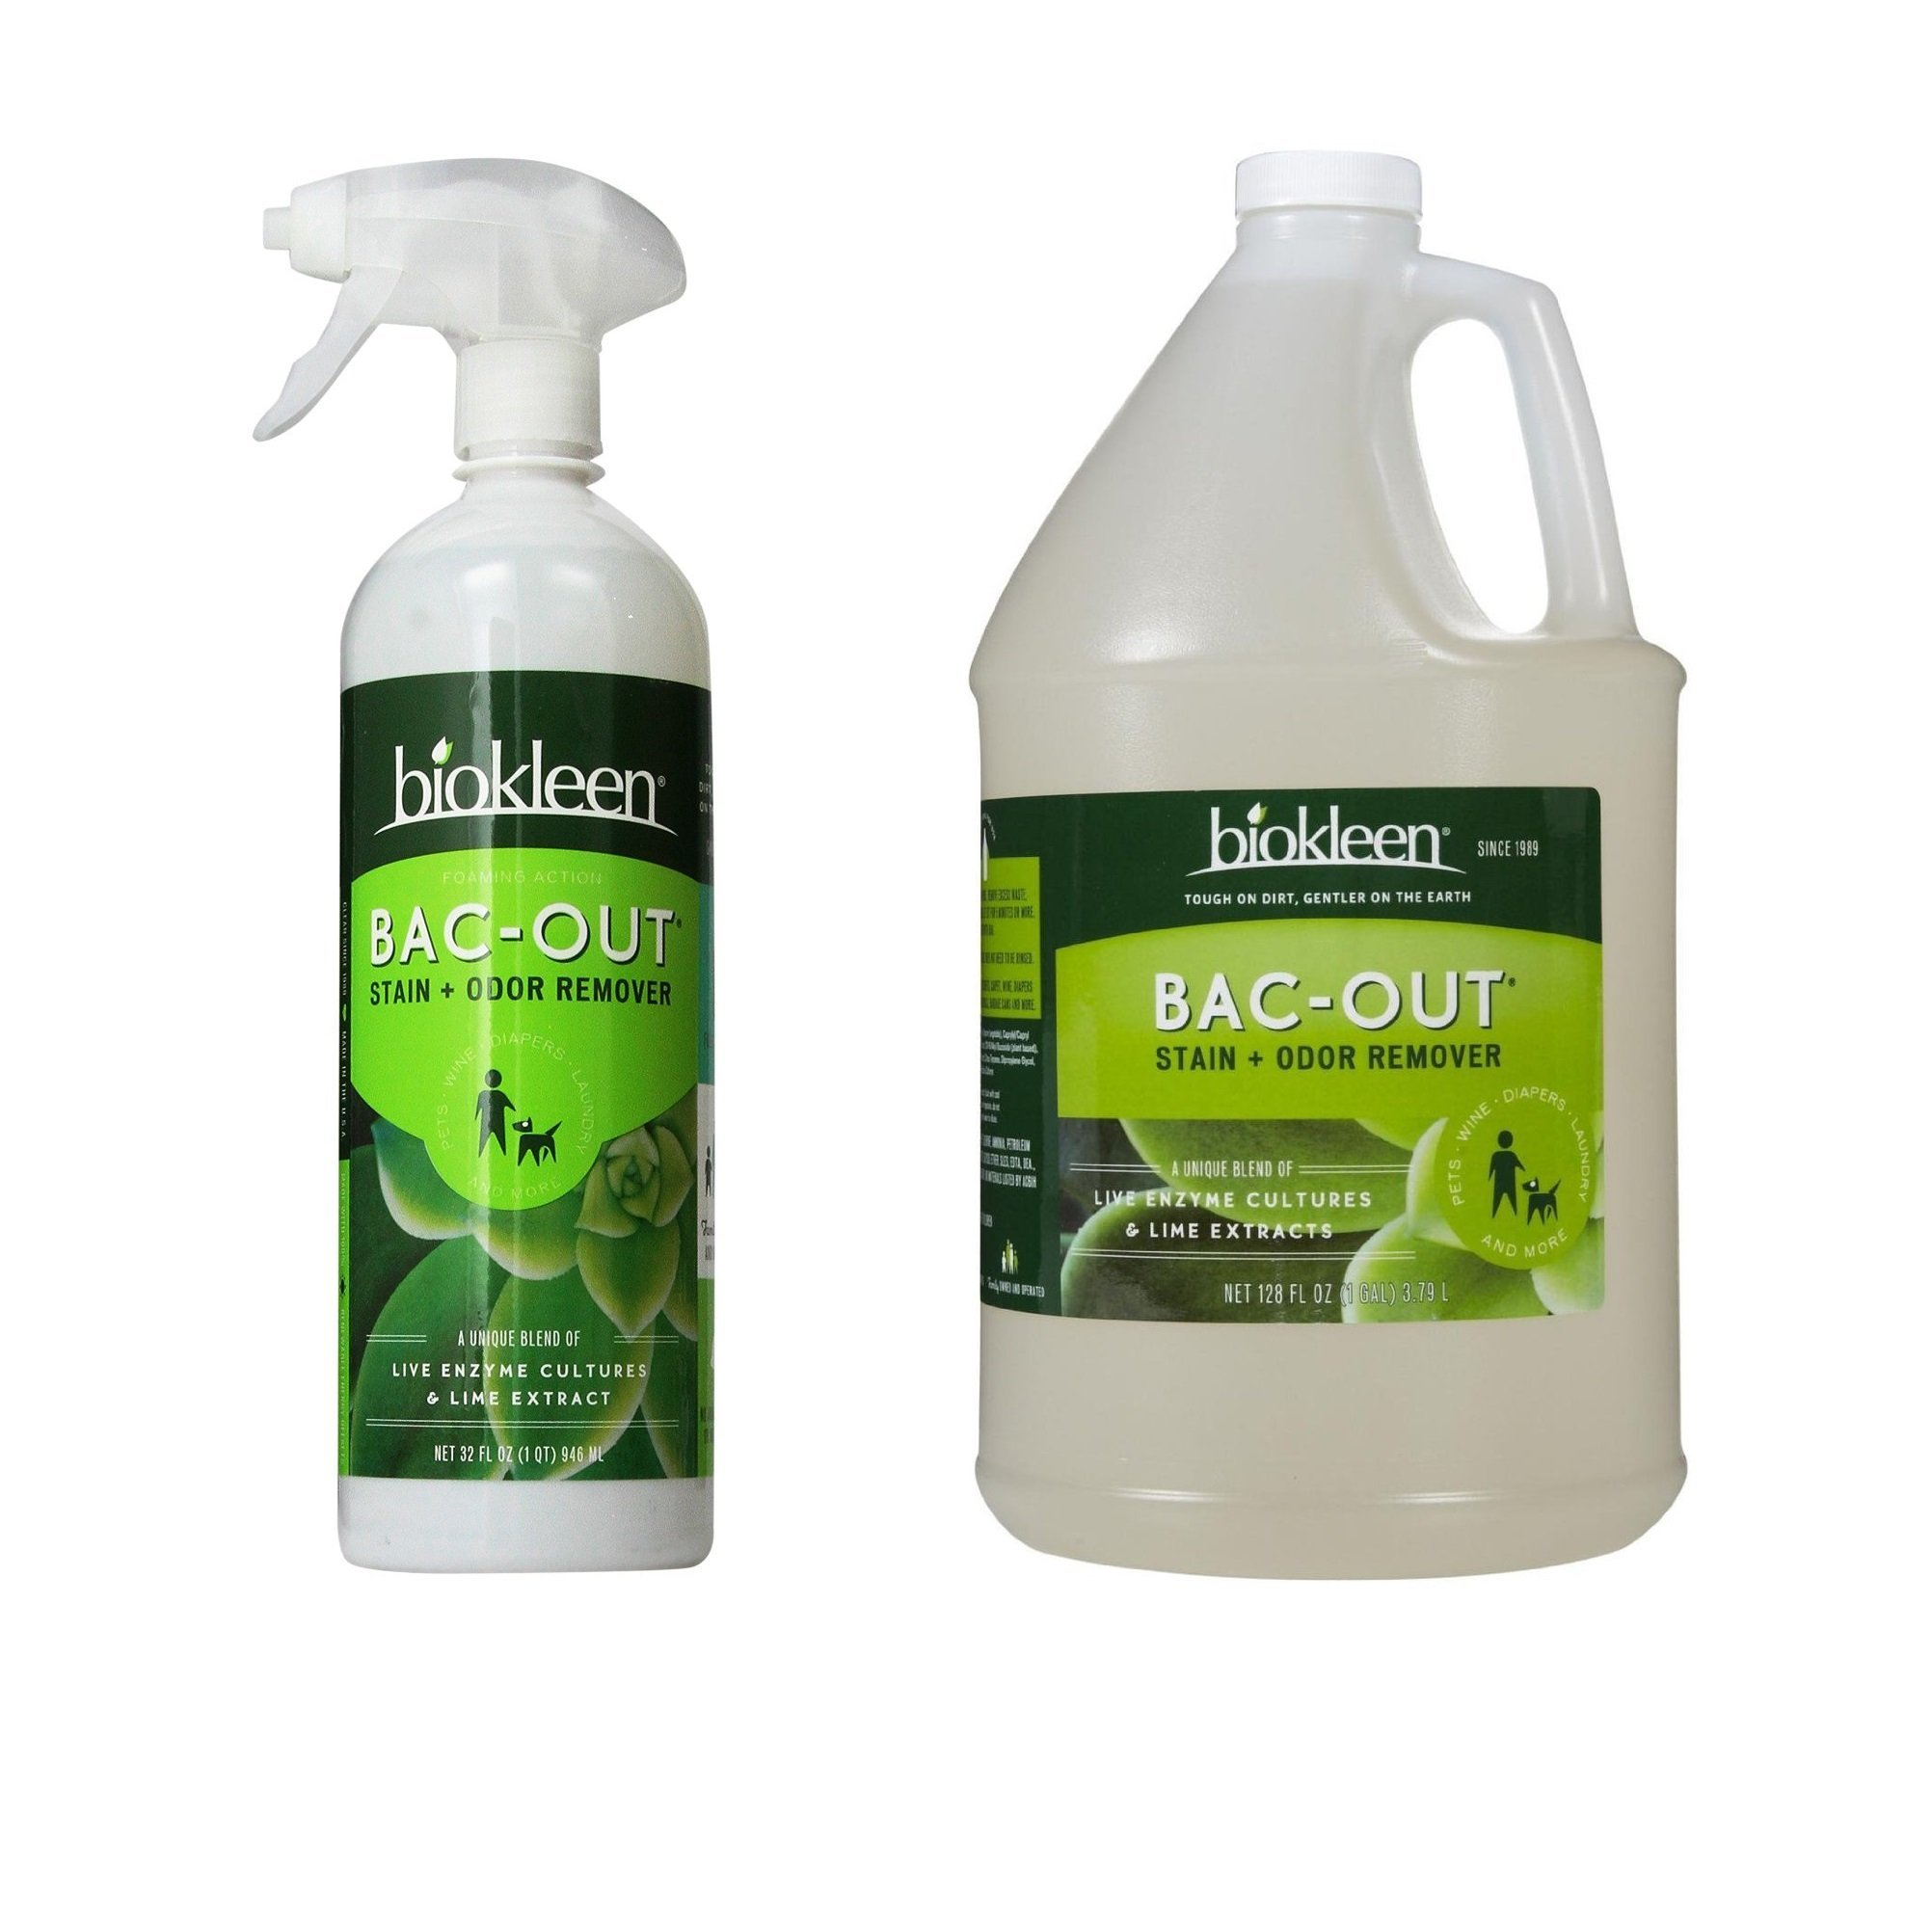 Biokleen Bac-Out Stain and Odor Remover Foam Spray (32 oz) with Refill (128 oz) by Biokleen